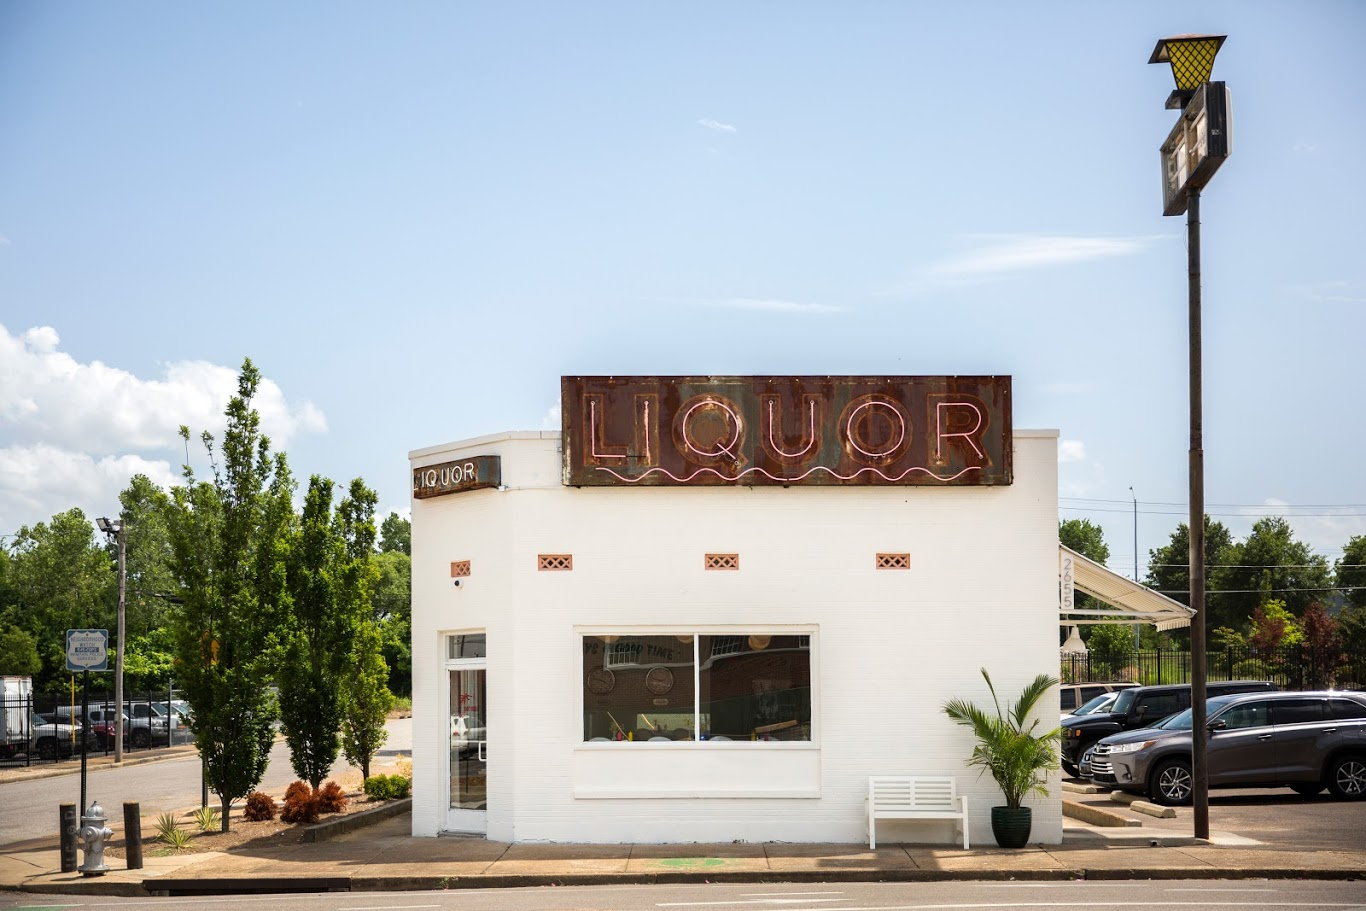 The Liquor Store on Design*Sponge